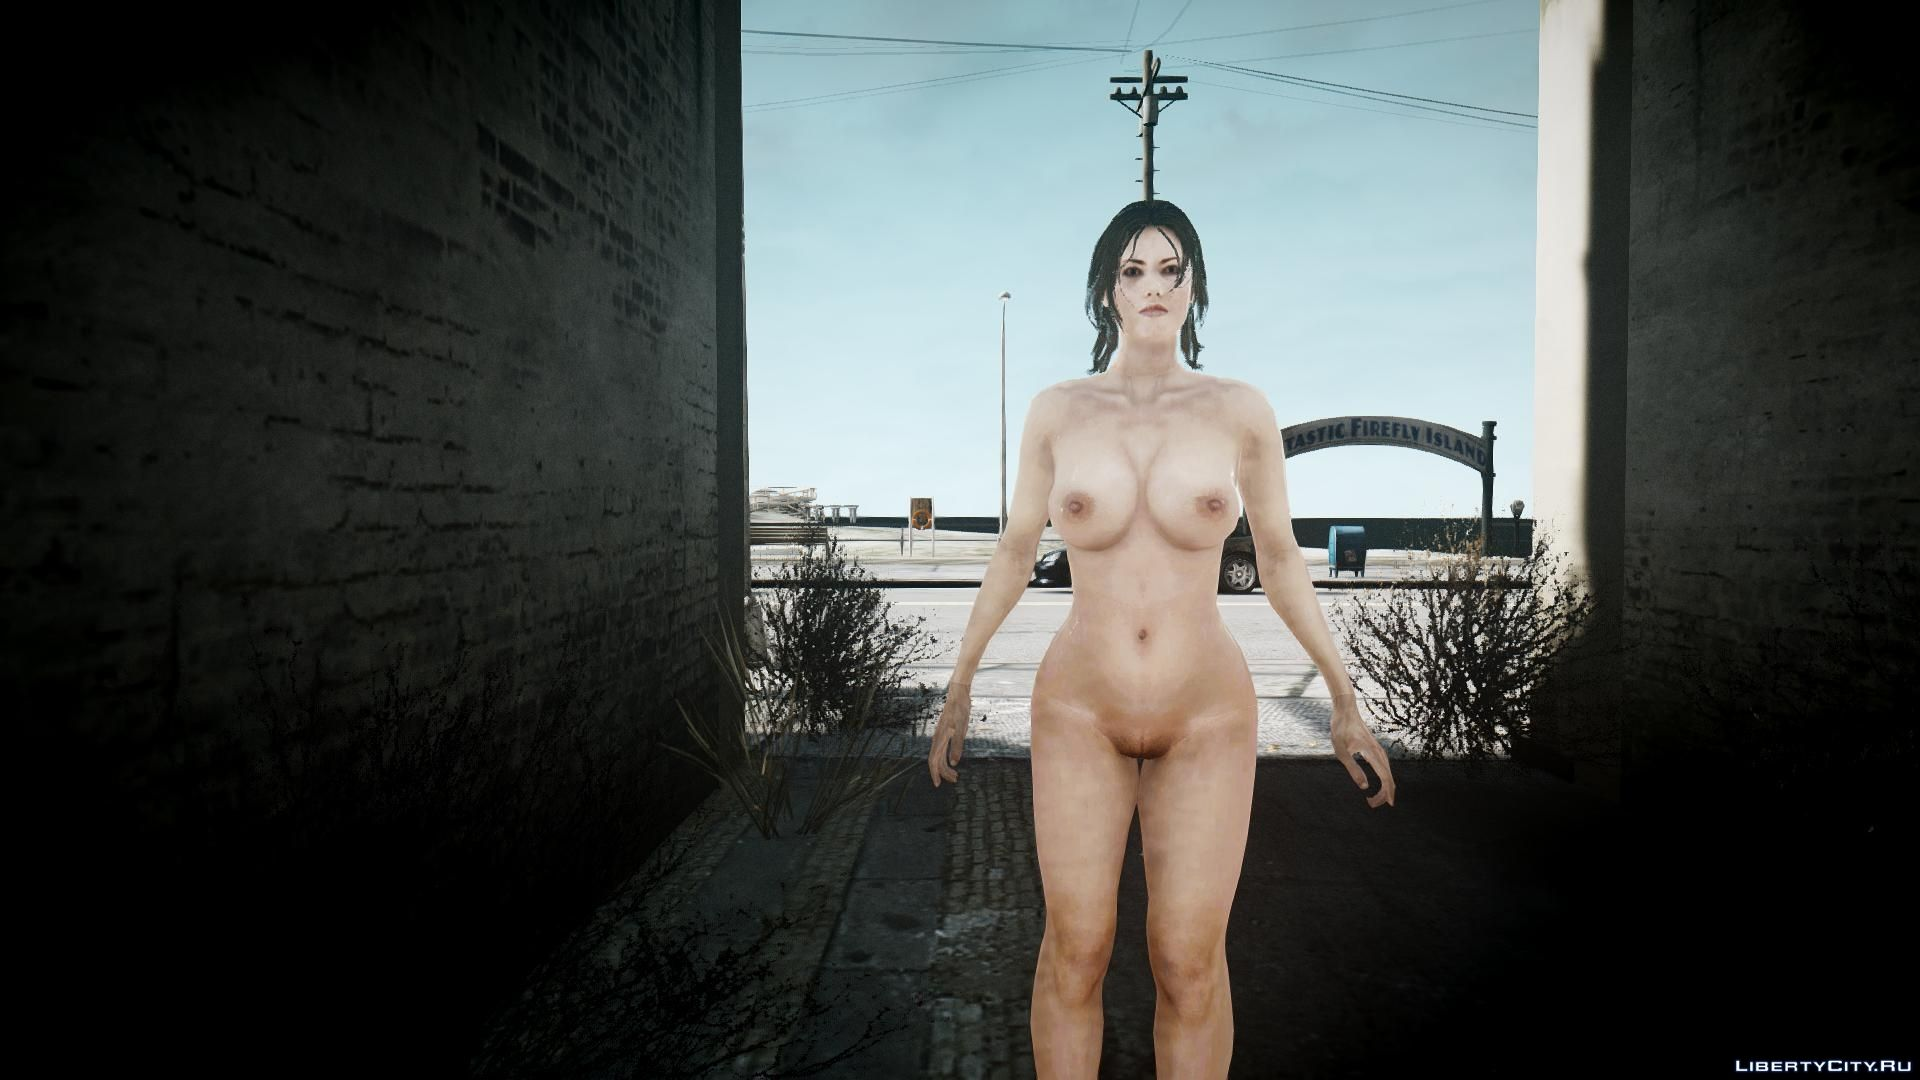 gta-iv-nude-skin-wet-pussy